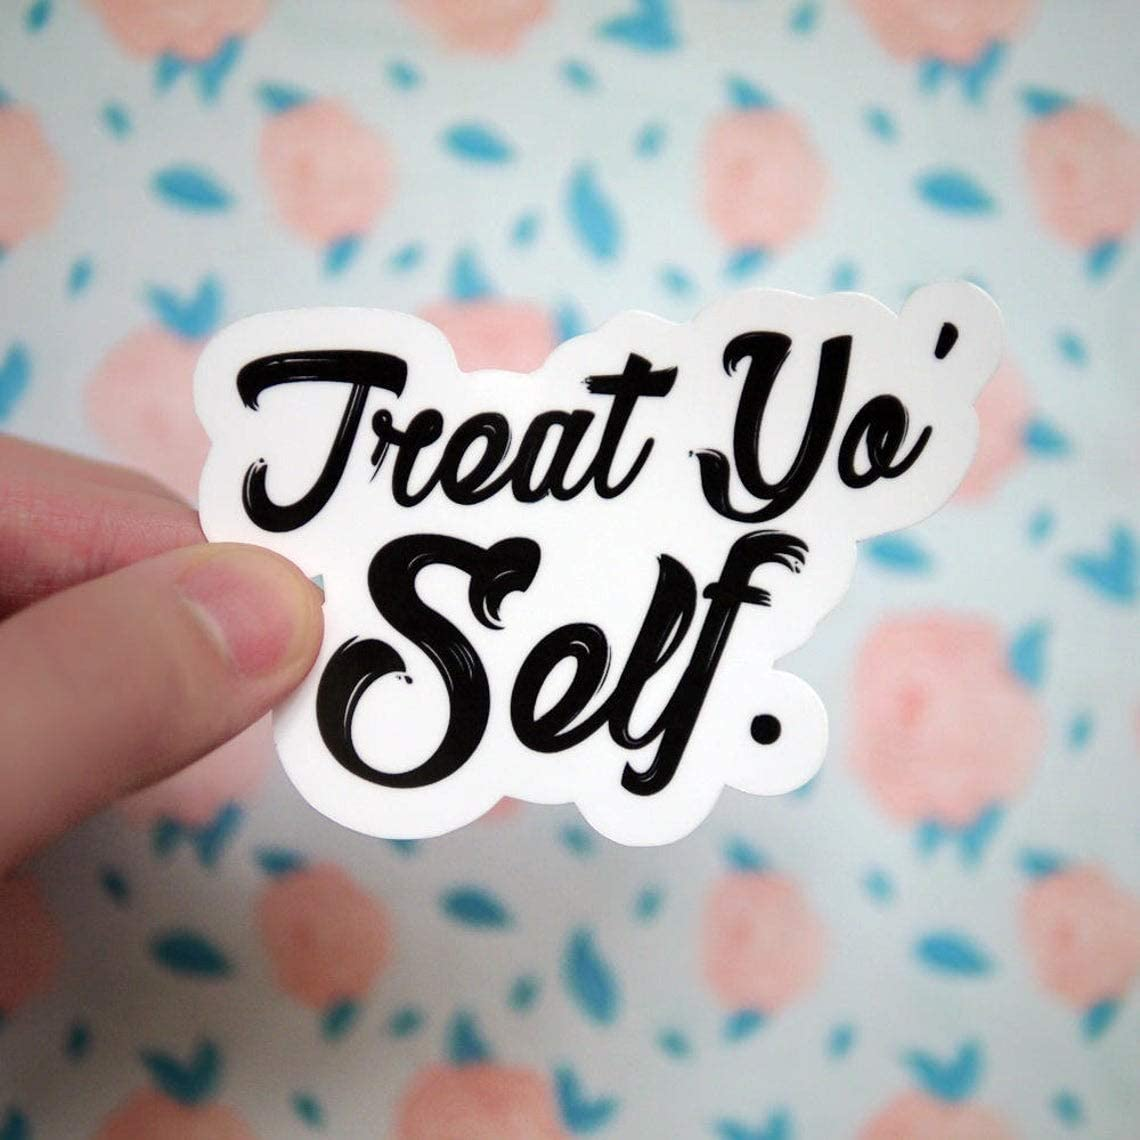 "Treat Yo Self, Laptop Sticker and Decal, Macbook Decal, Car Decal,Bottle Decal,Vinyl Decal with 4"", 3 Pack"